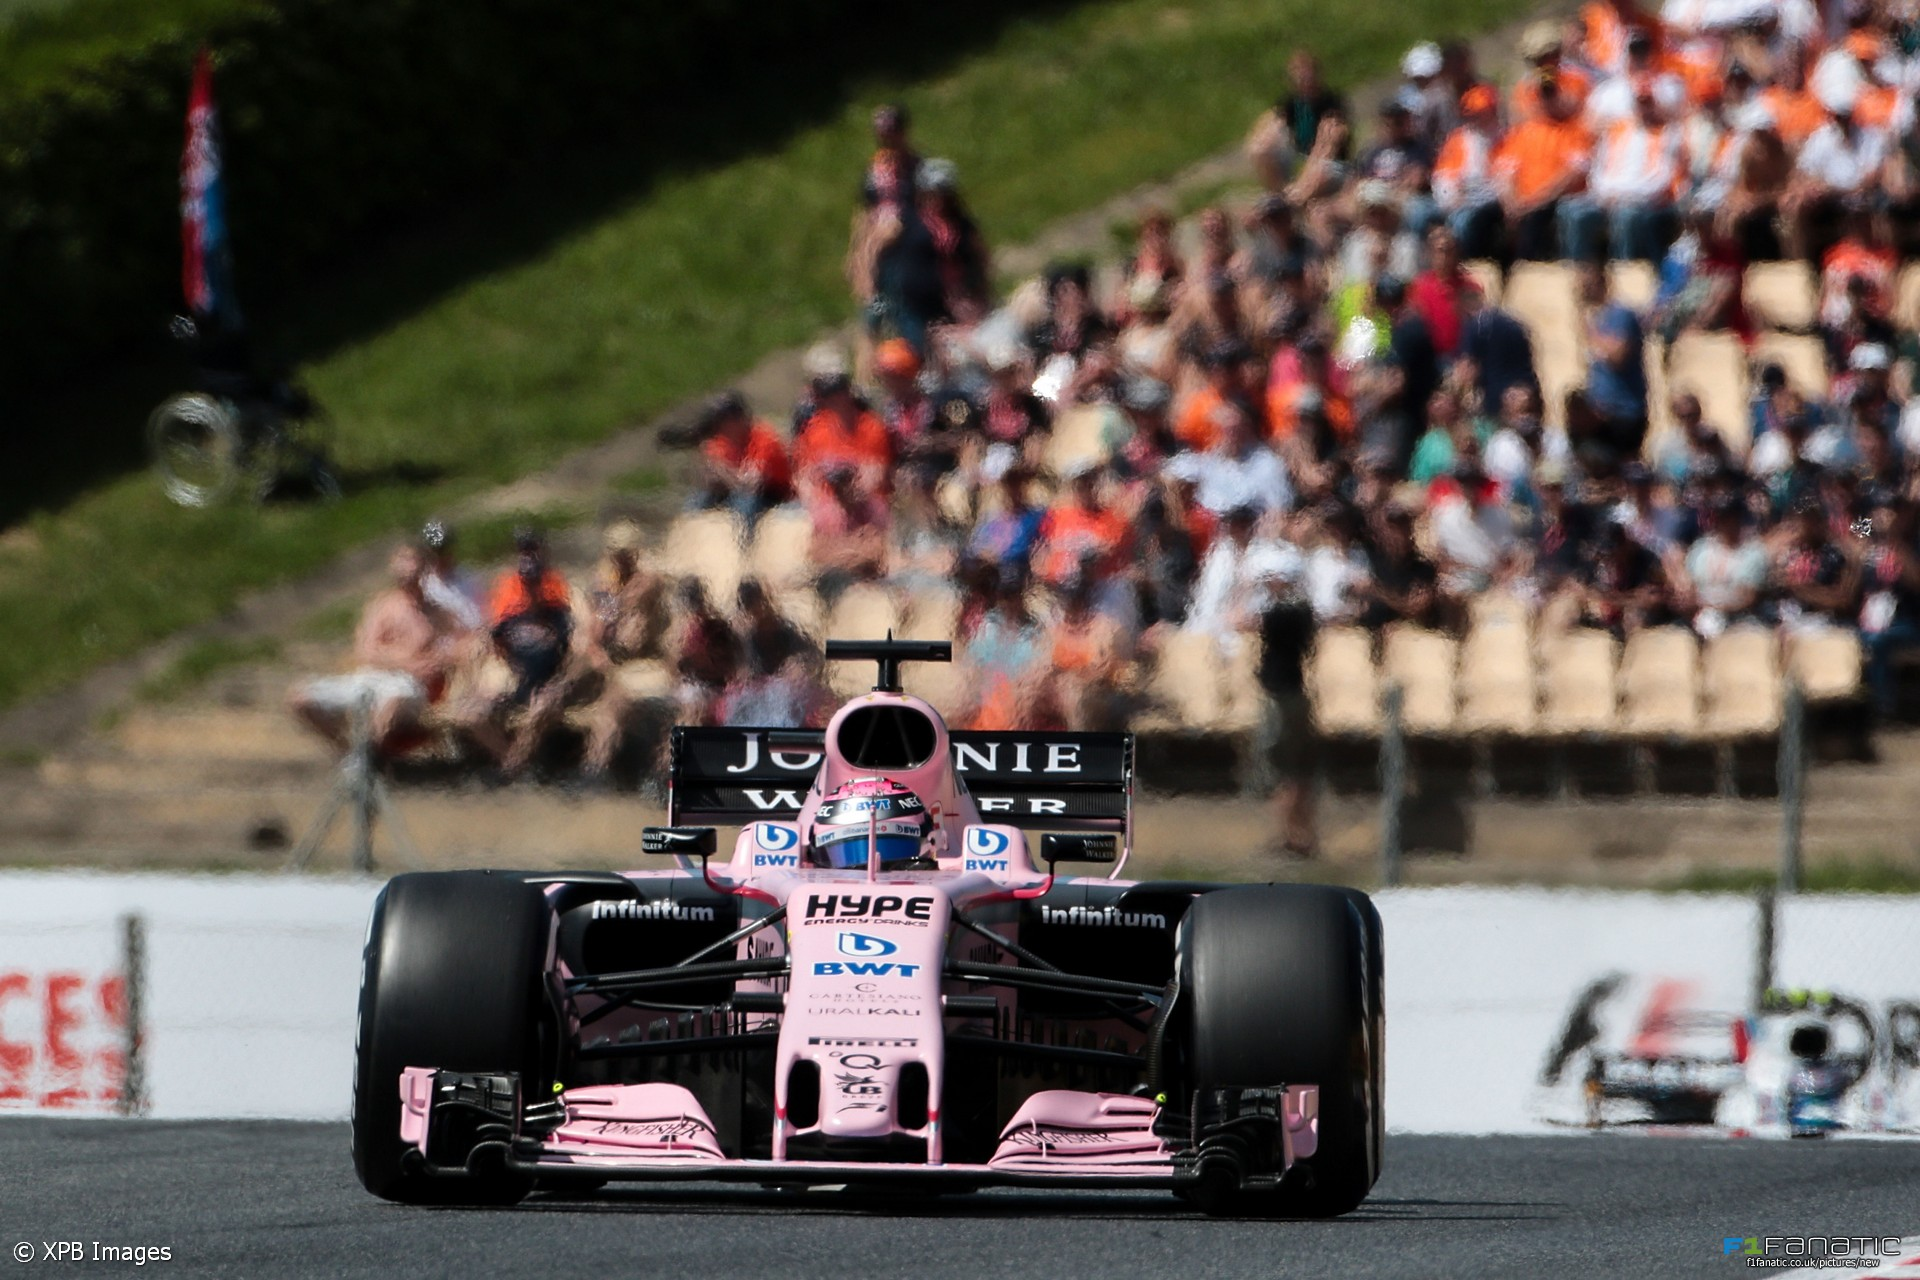 Sergio Perez, Force India, Circuit de Catalunya, 2017